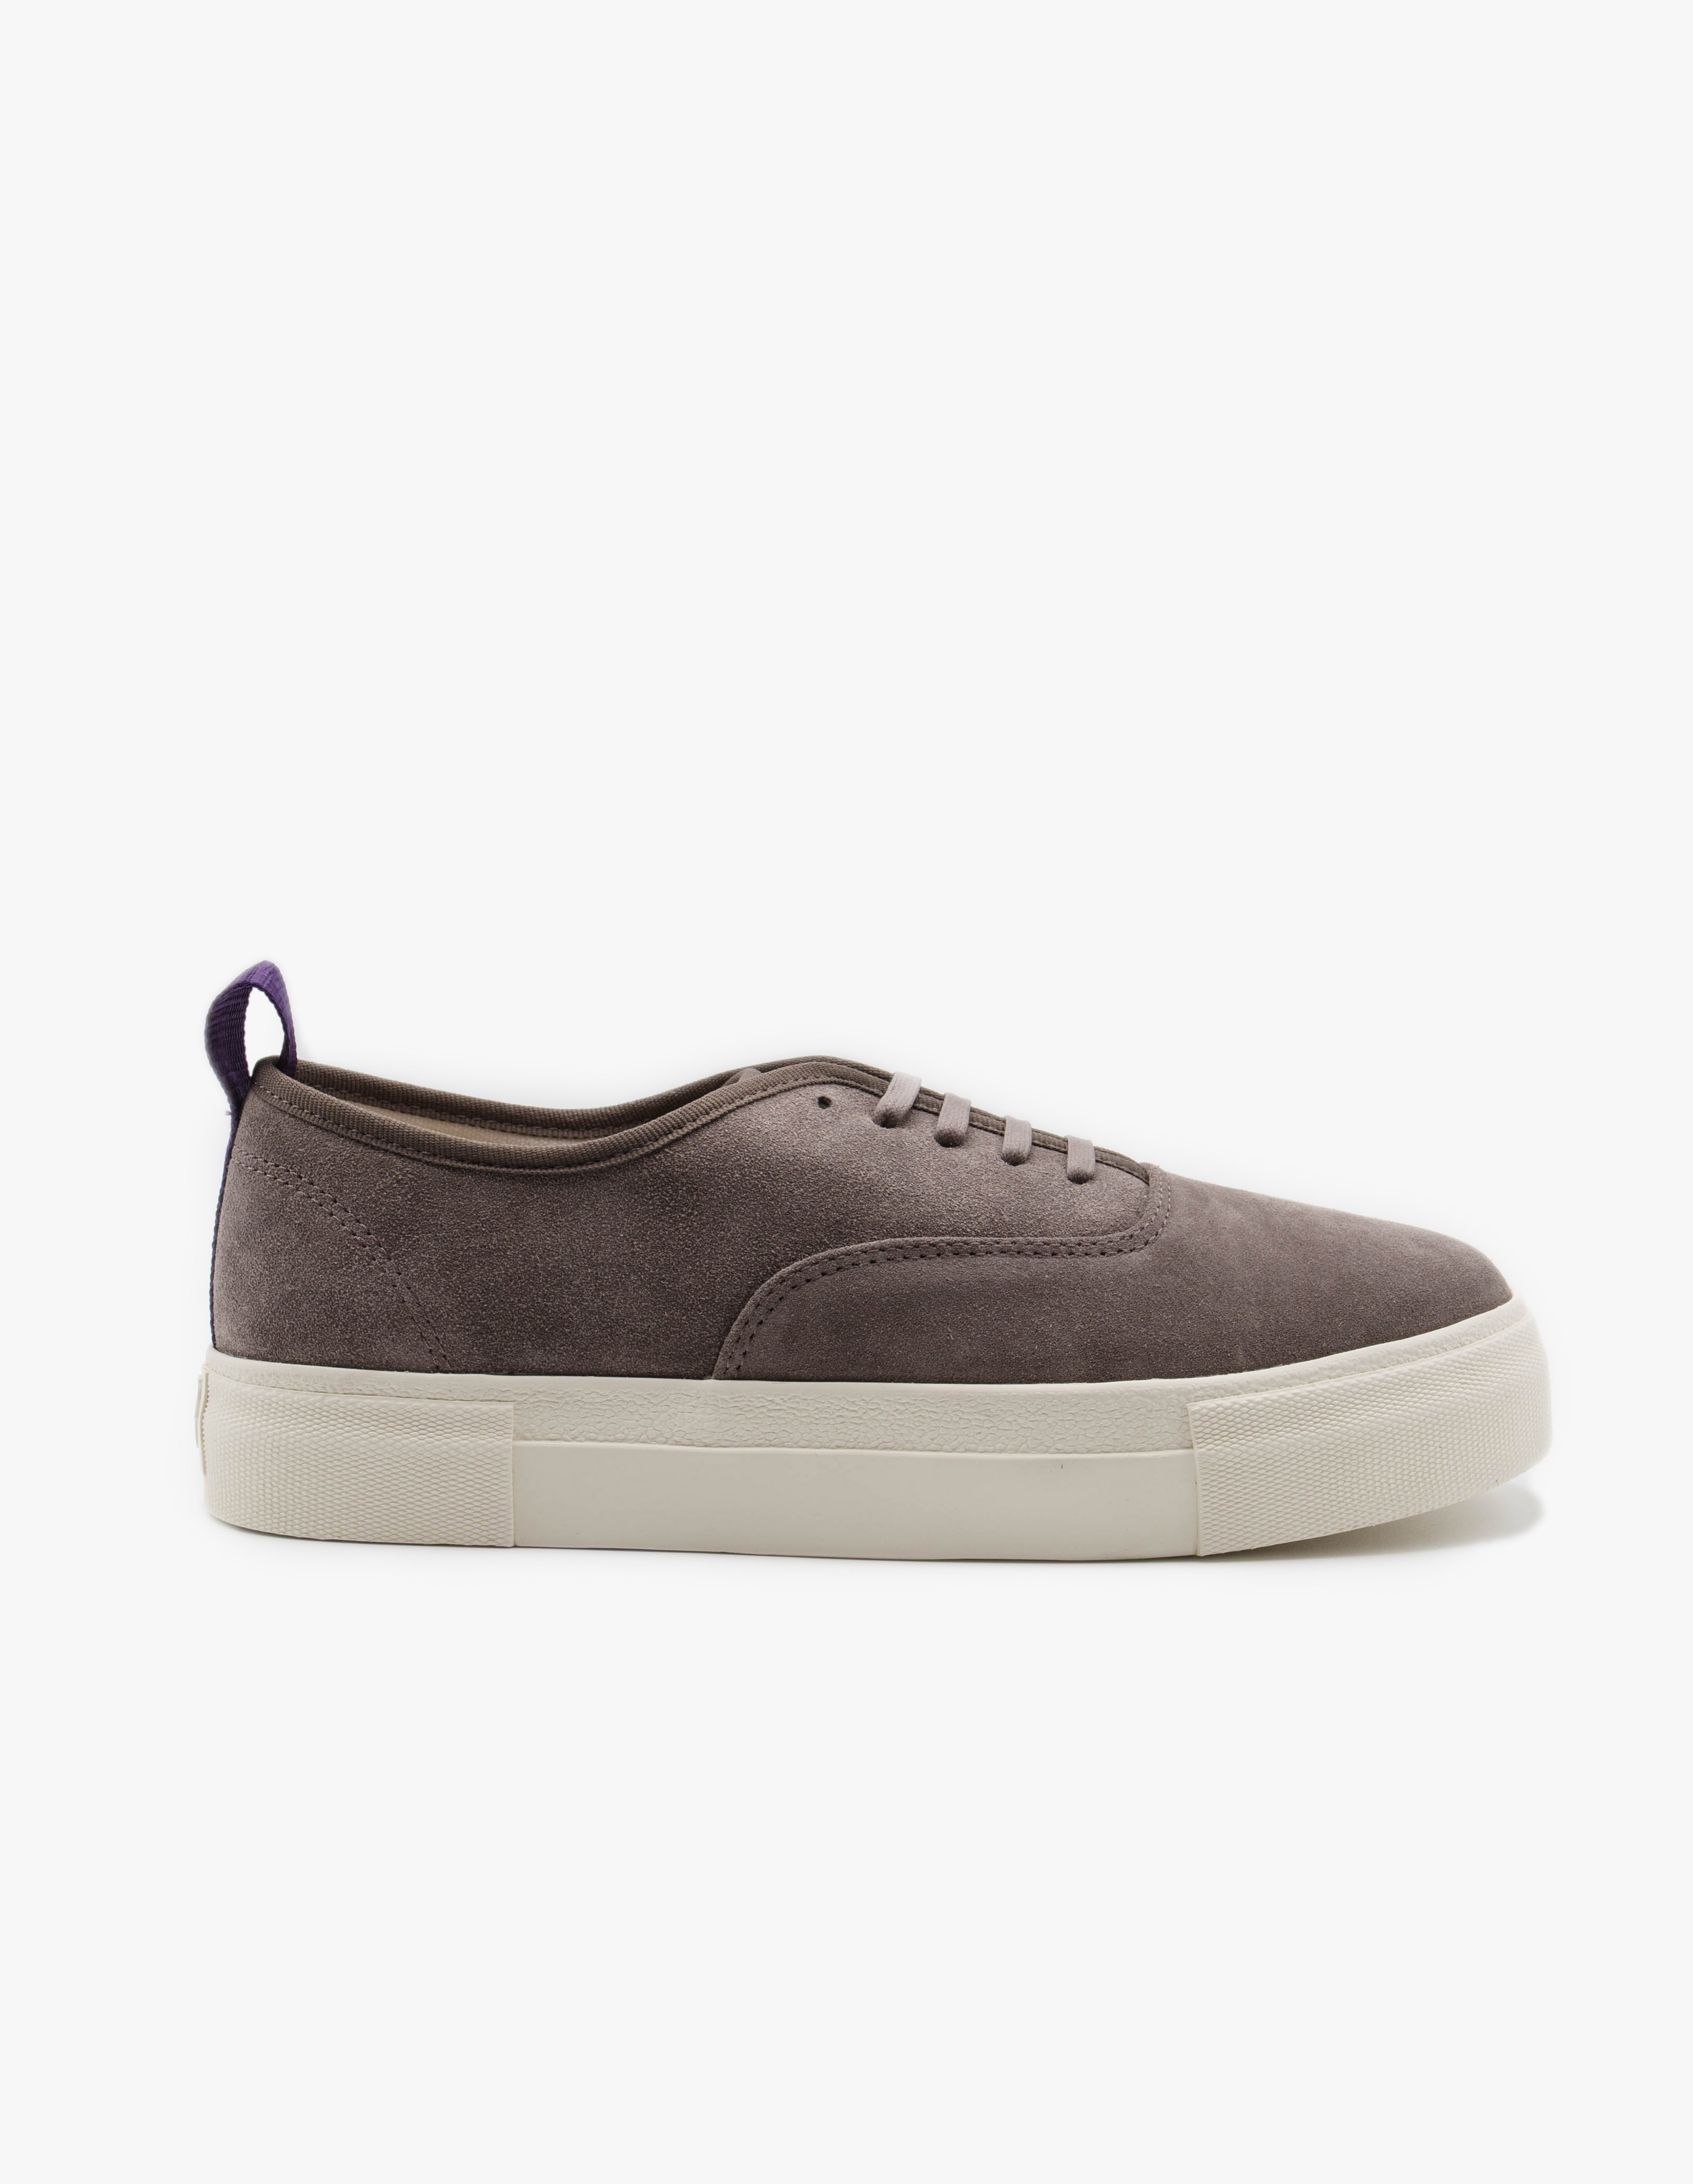 Eytys Mother Suede - Iron | Garmentory